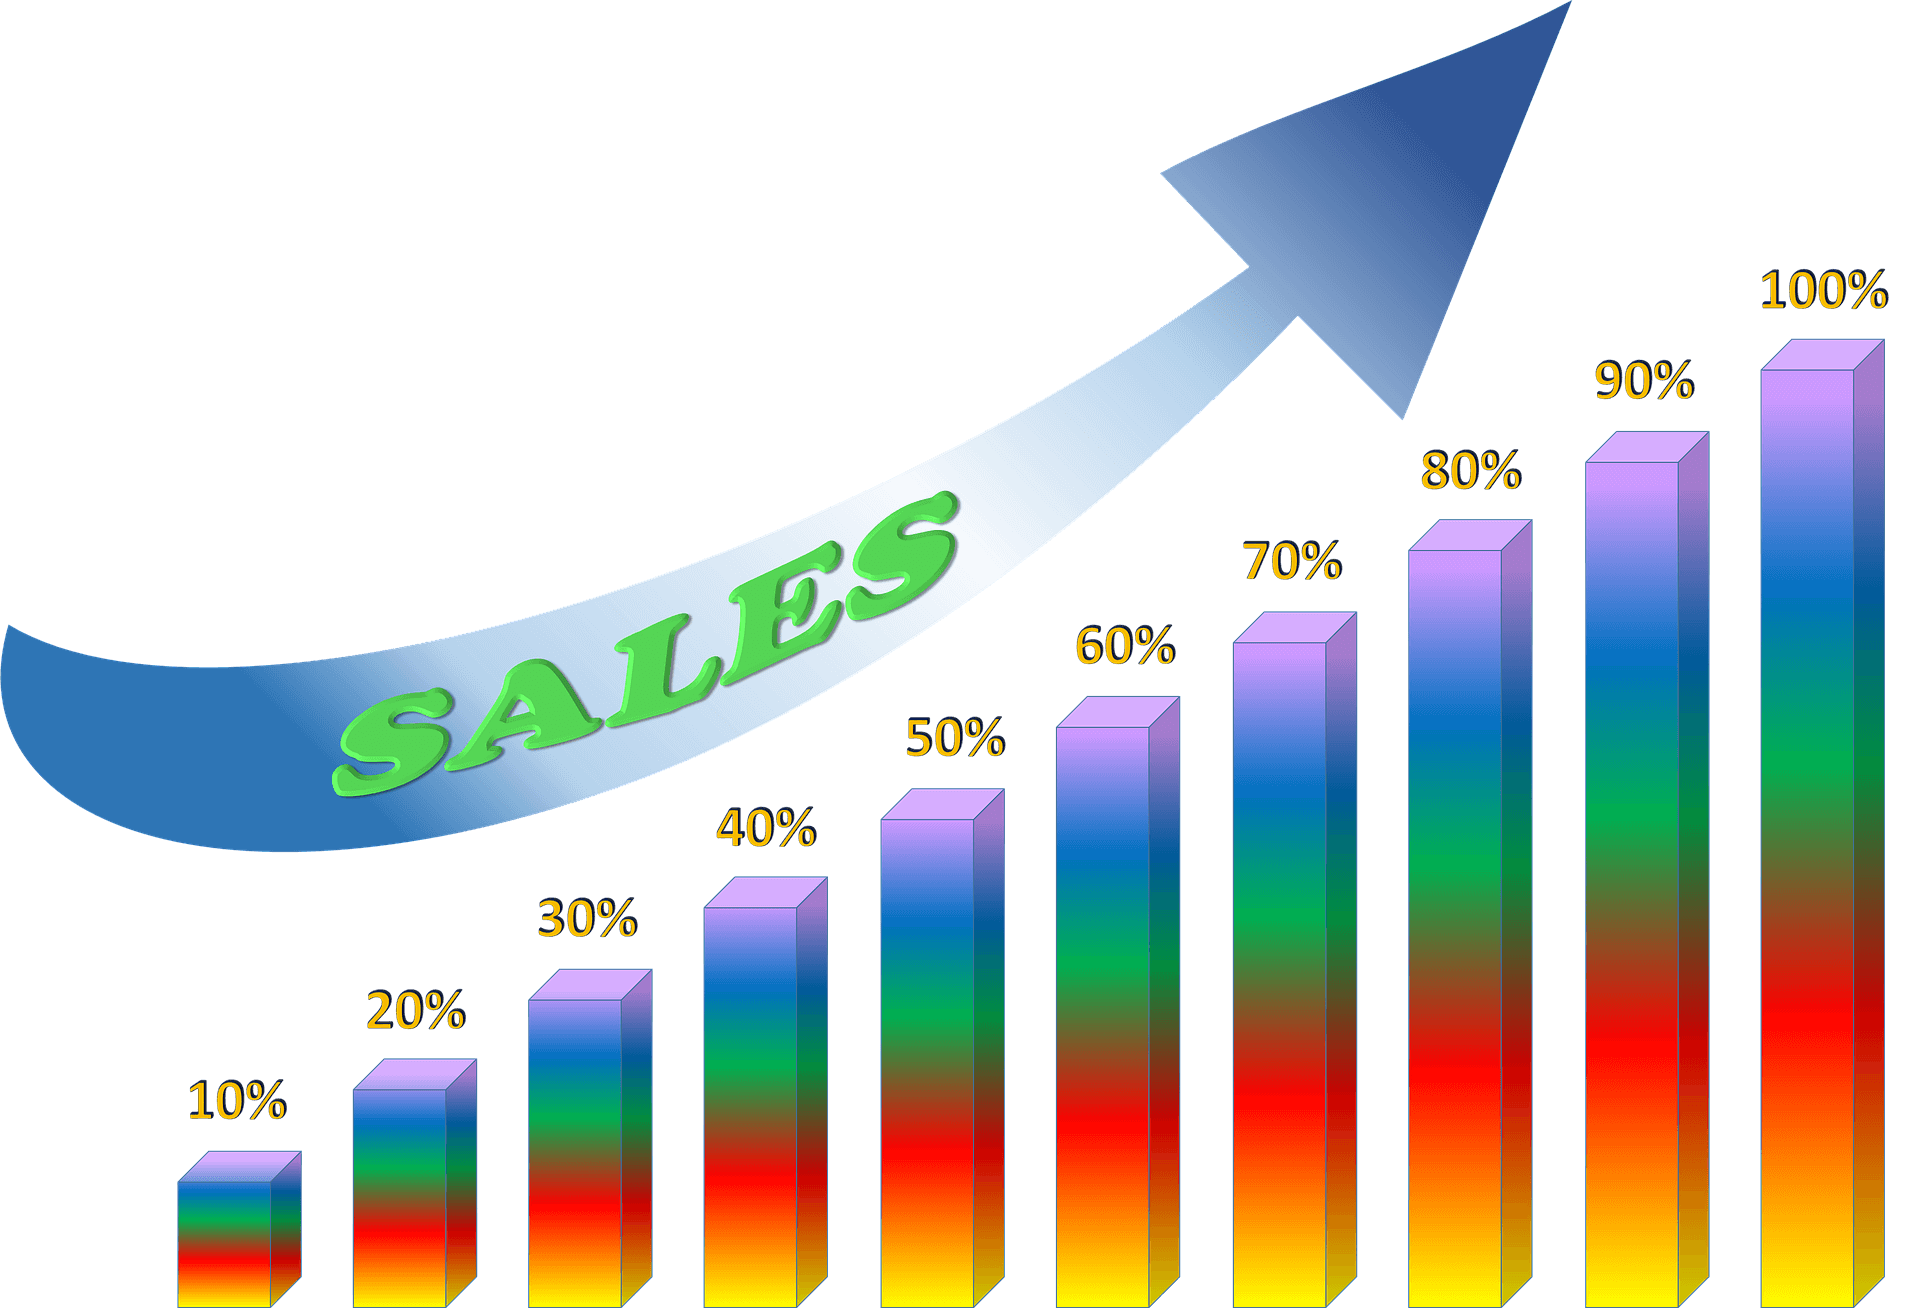 Market Research: How to Increase Sales in a Competitive Market